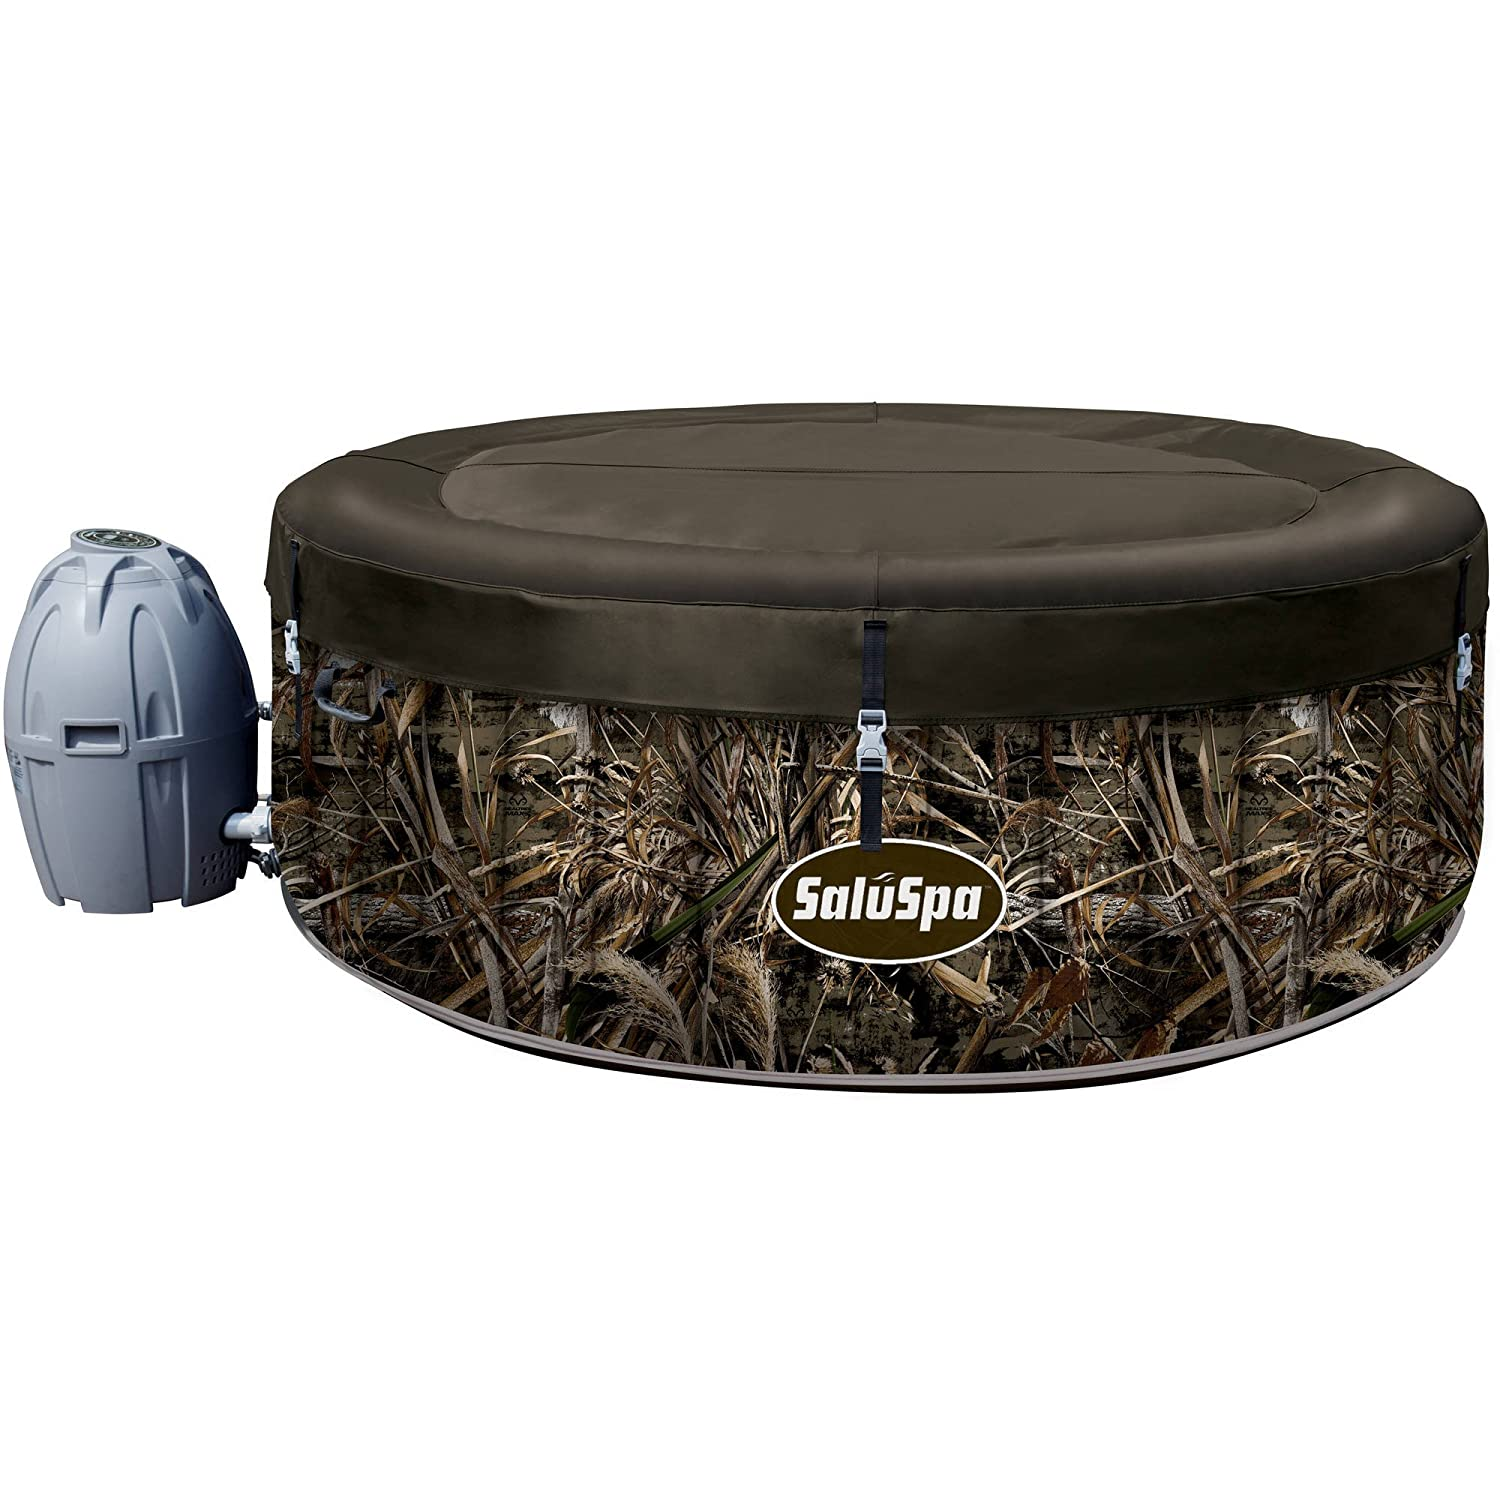 SaluSpa Realtree MAX-5 AirJet 4 Person Portable Inflatable Hot Tub